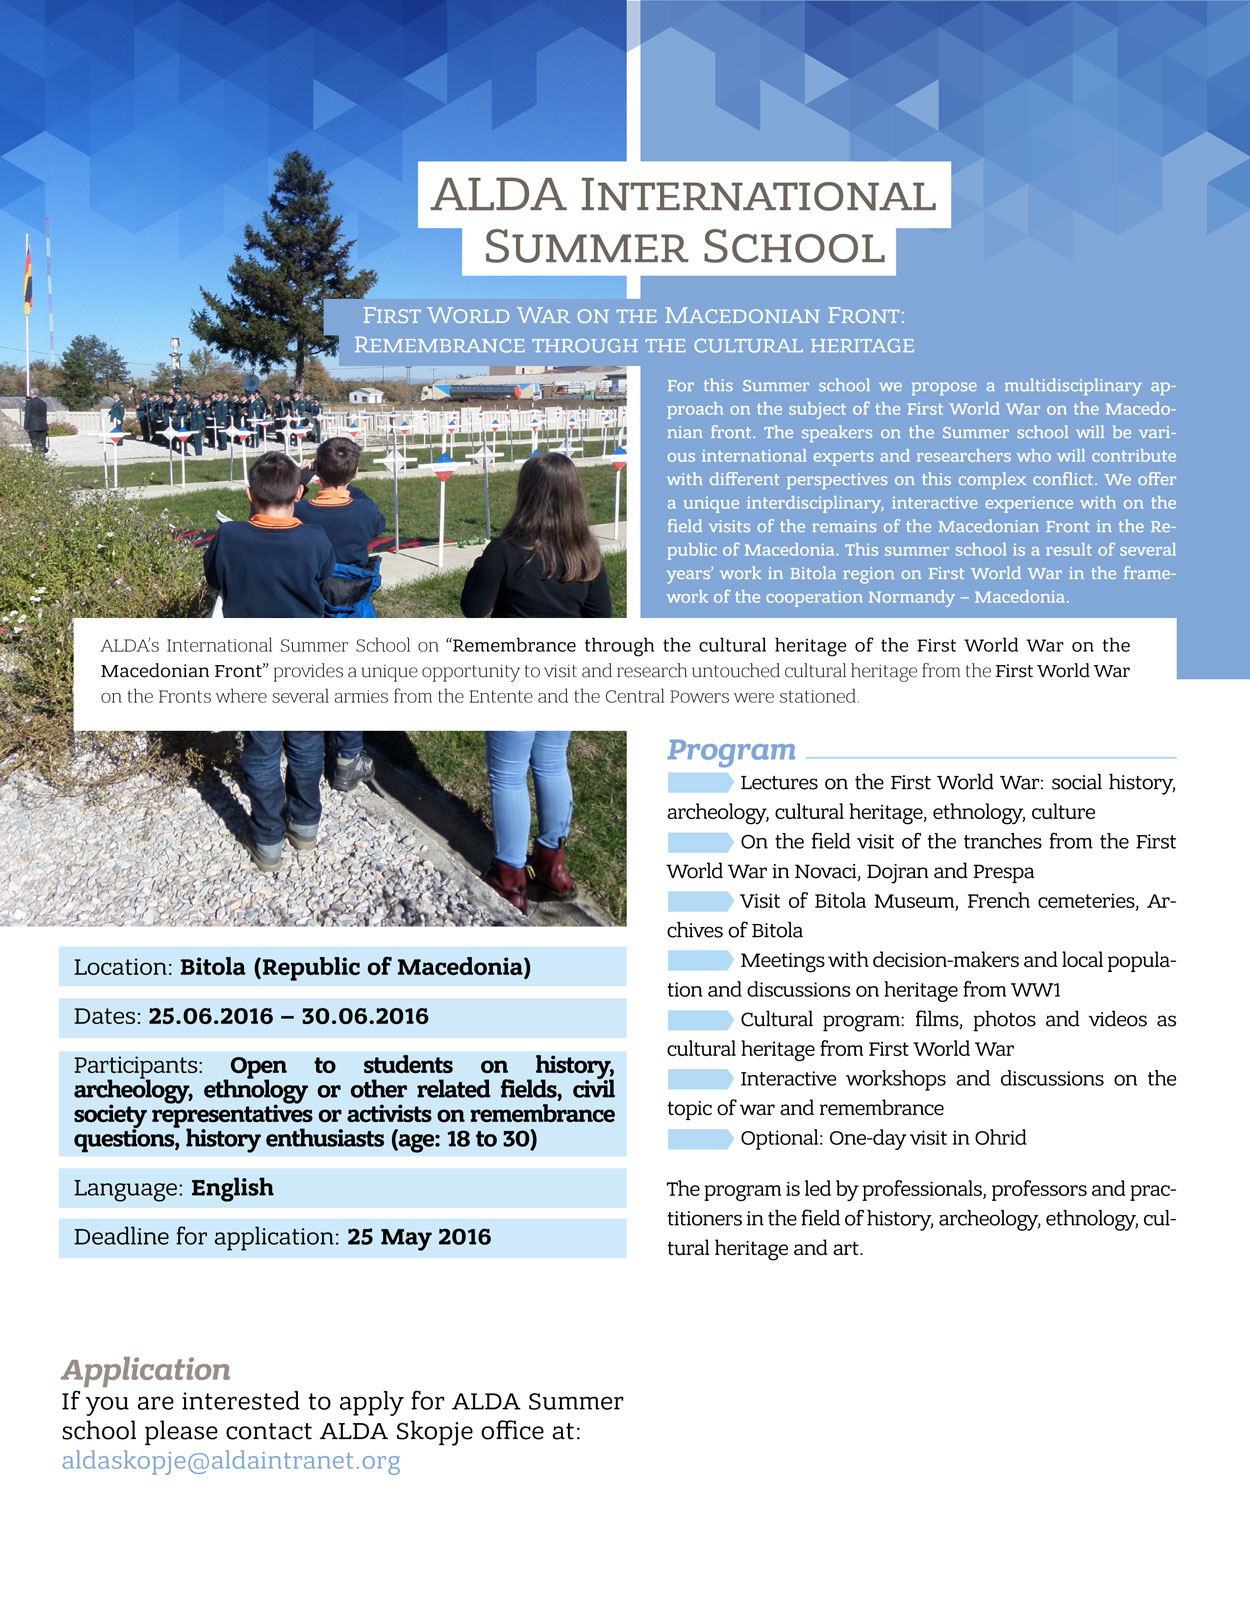 ALDA-Summer-School-EN-1